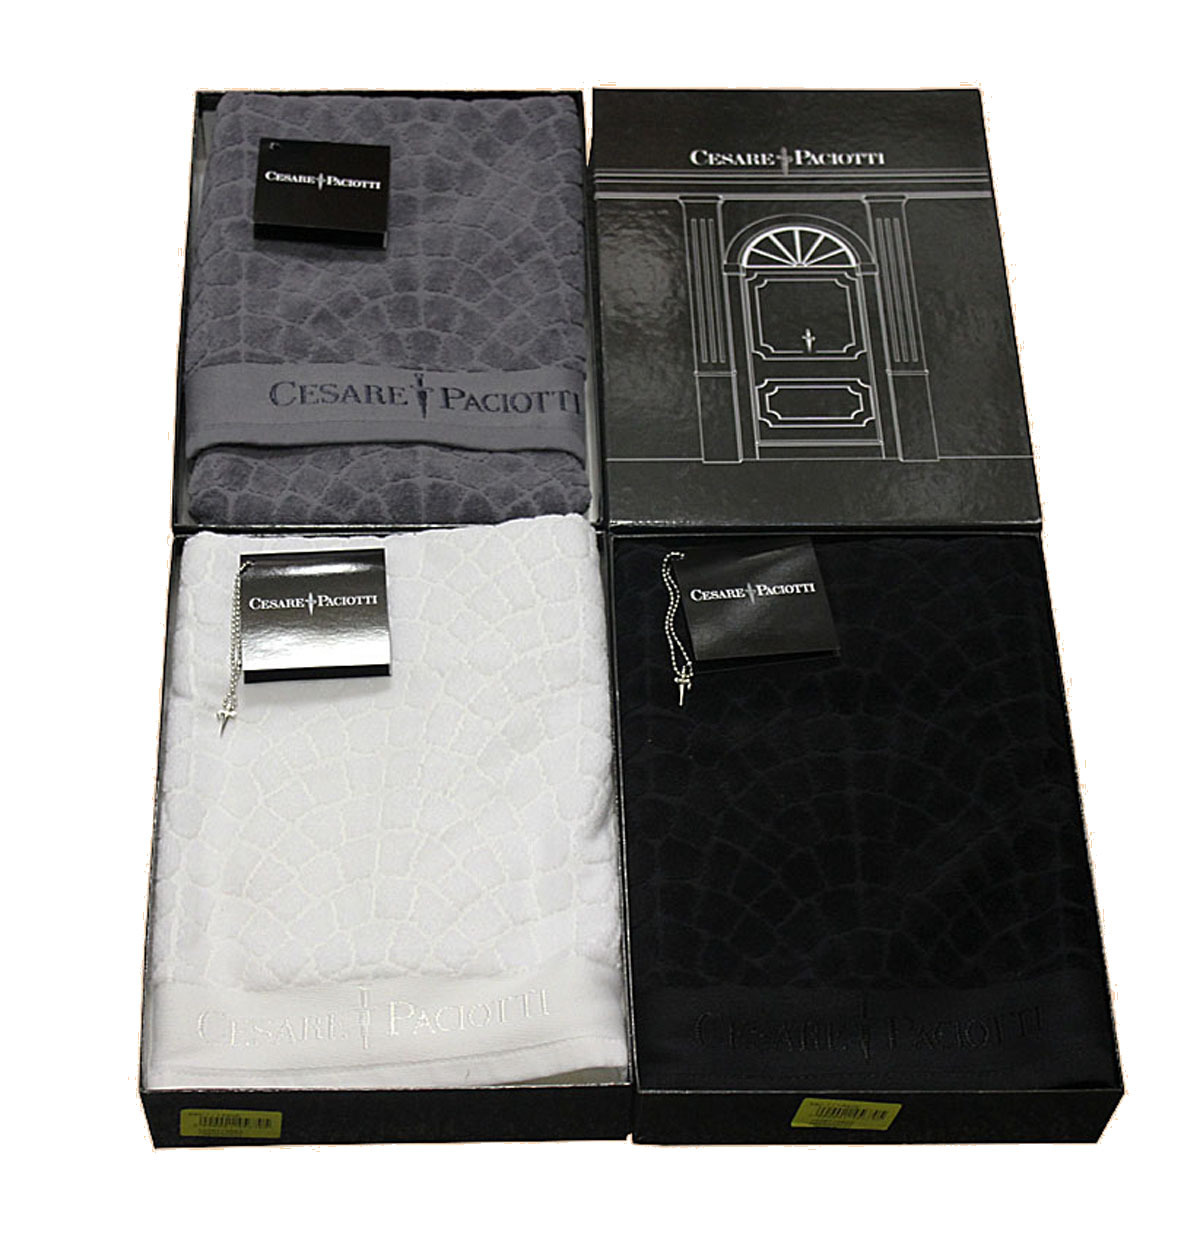 Полотенца Полотенце 100х150 Cesare Paciotti Pave Jacquard Nero черное polotentse-100h150-cesare-paciotti-pave-jacquard-nero-chernoe-italiya.JPG